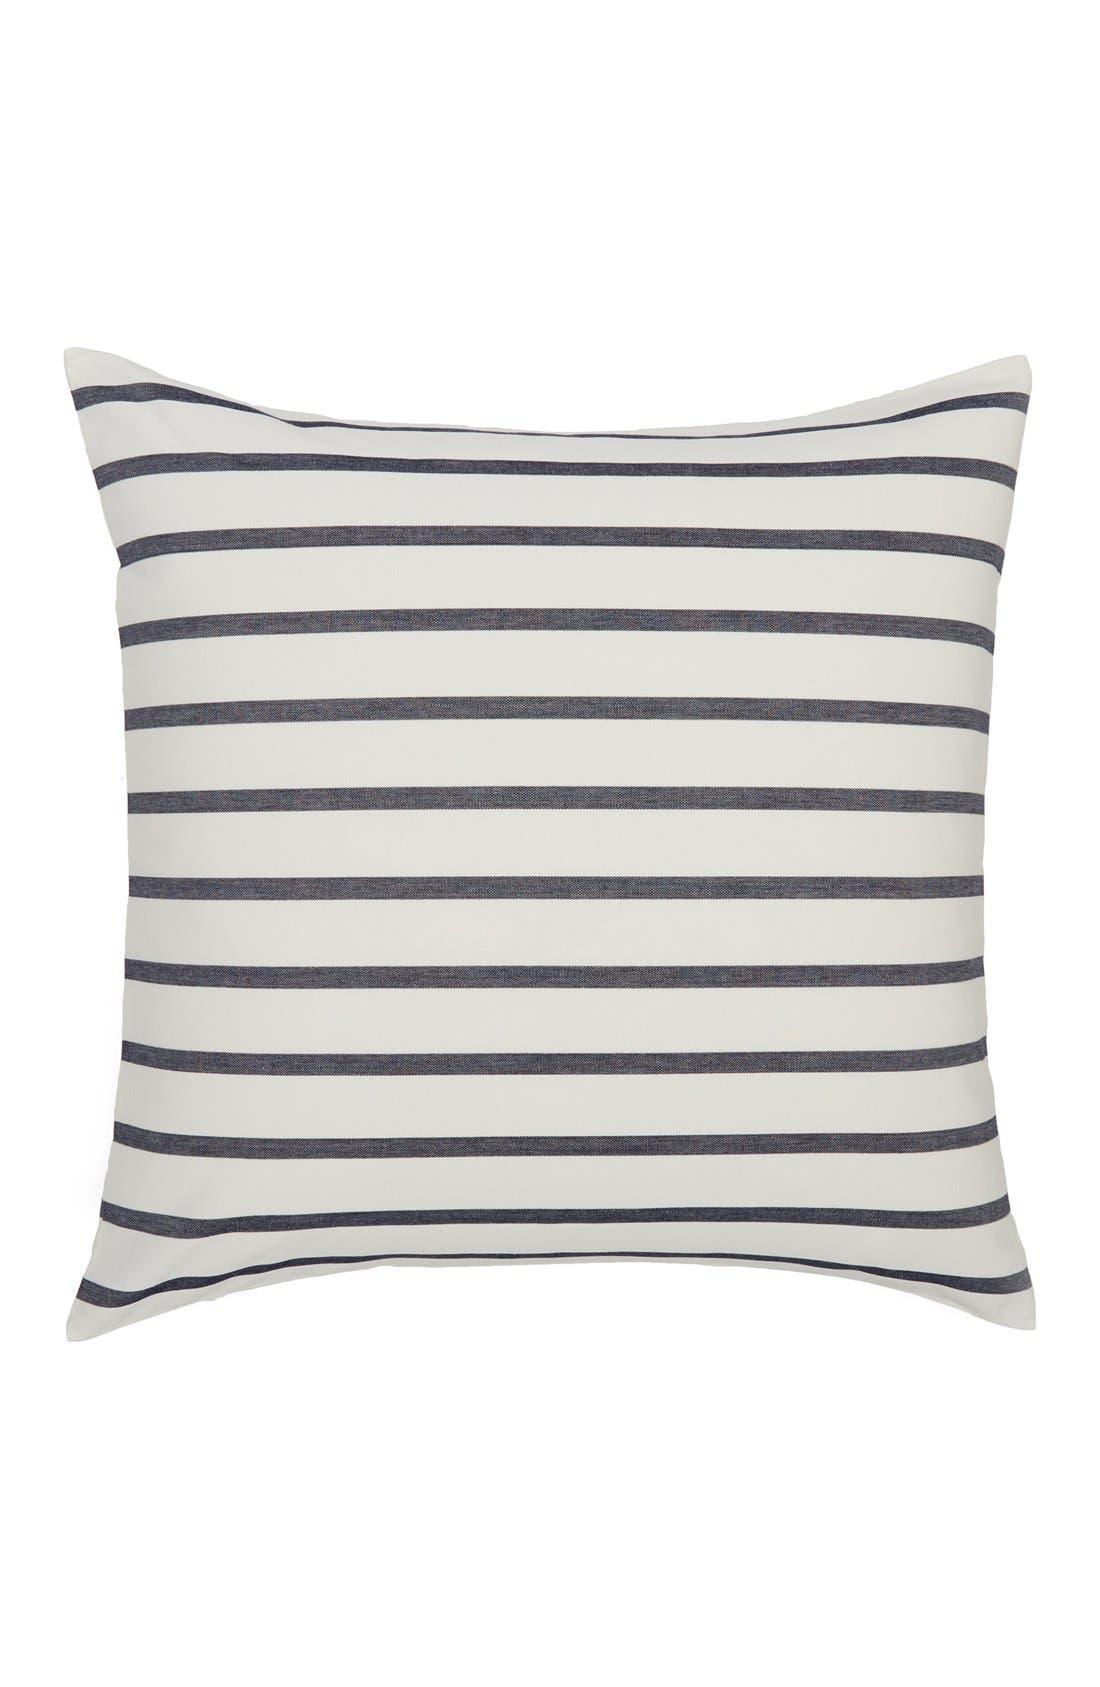 Alternate Image 1 Selected - kate spade new york 'harbour stripe' euro sham